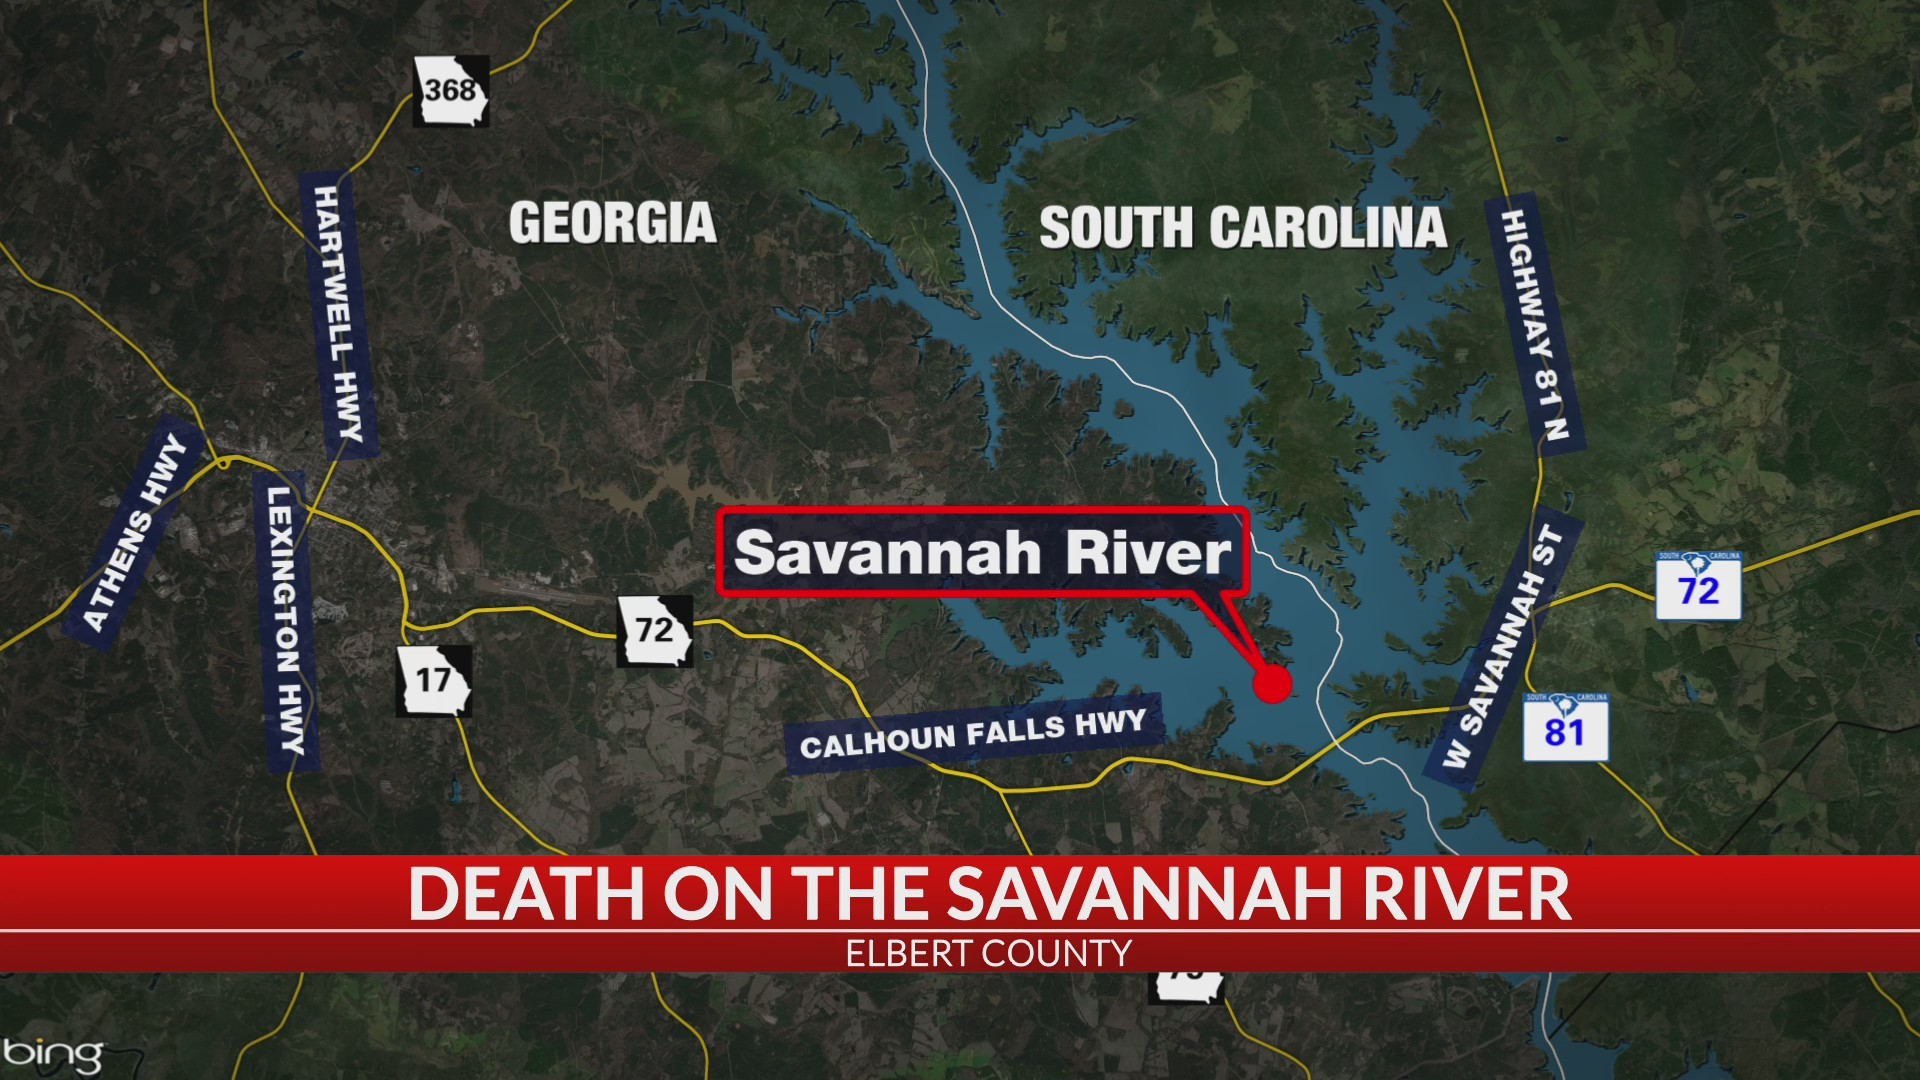 1 dead after incident on Savannah River, Elbert Co  coroner says